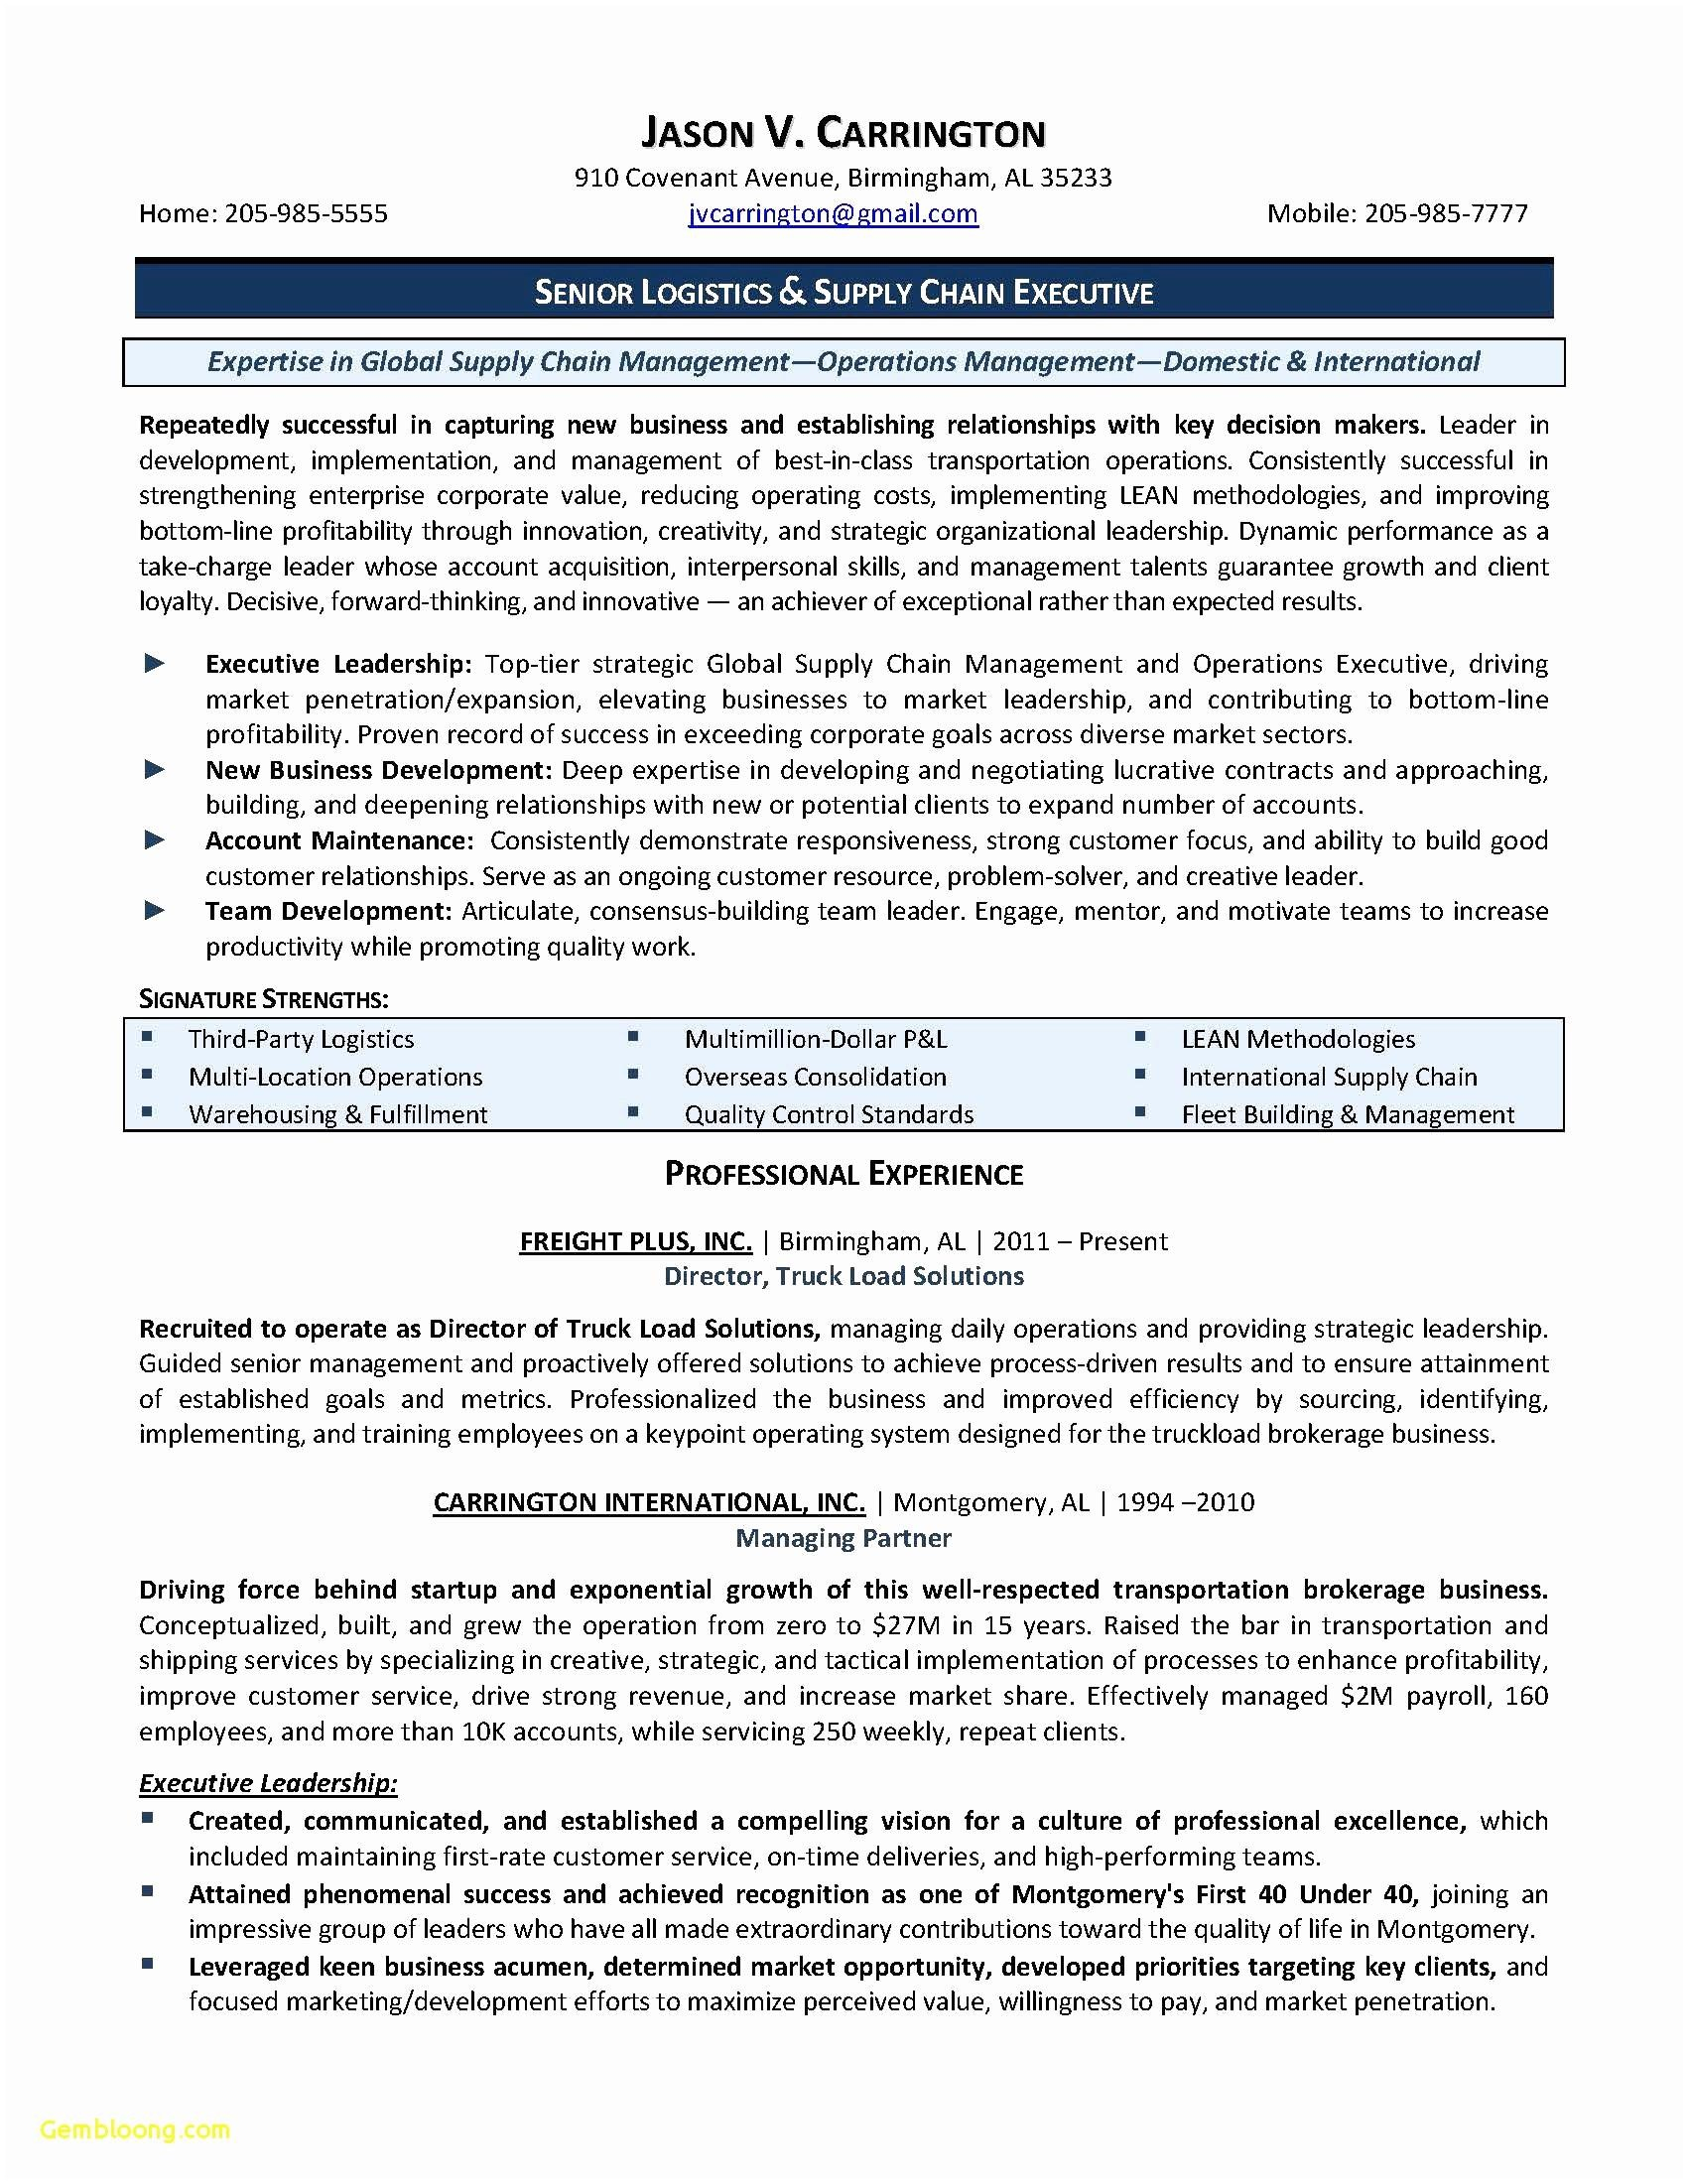 Private Equity Resume Template - Supply Chain Management Resume Sample